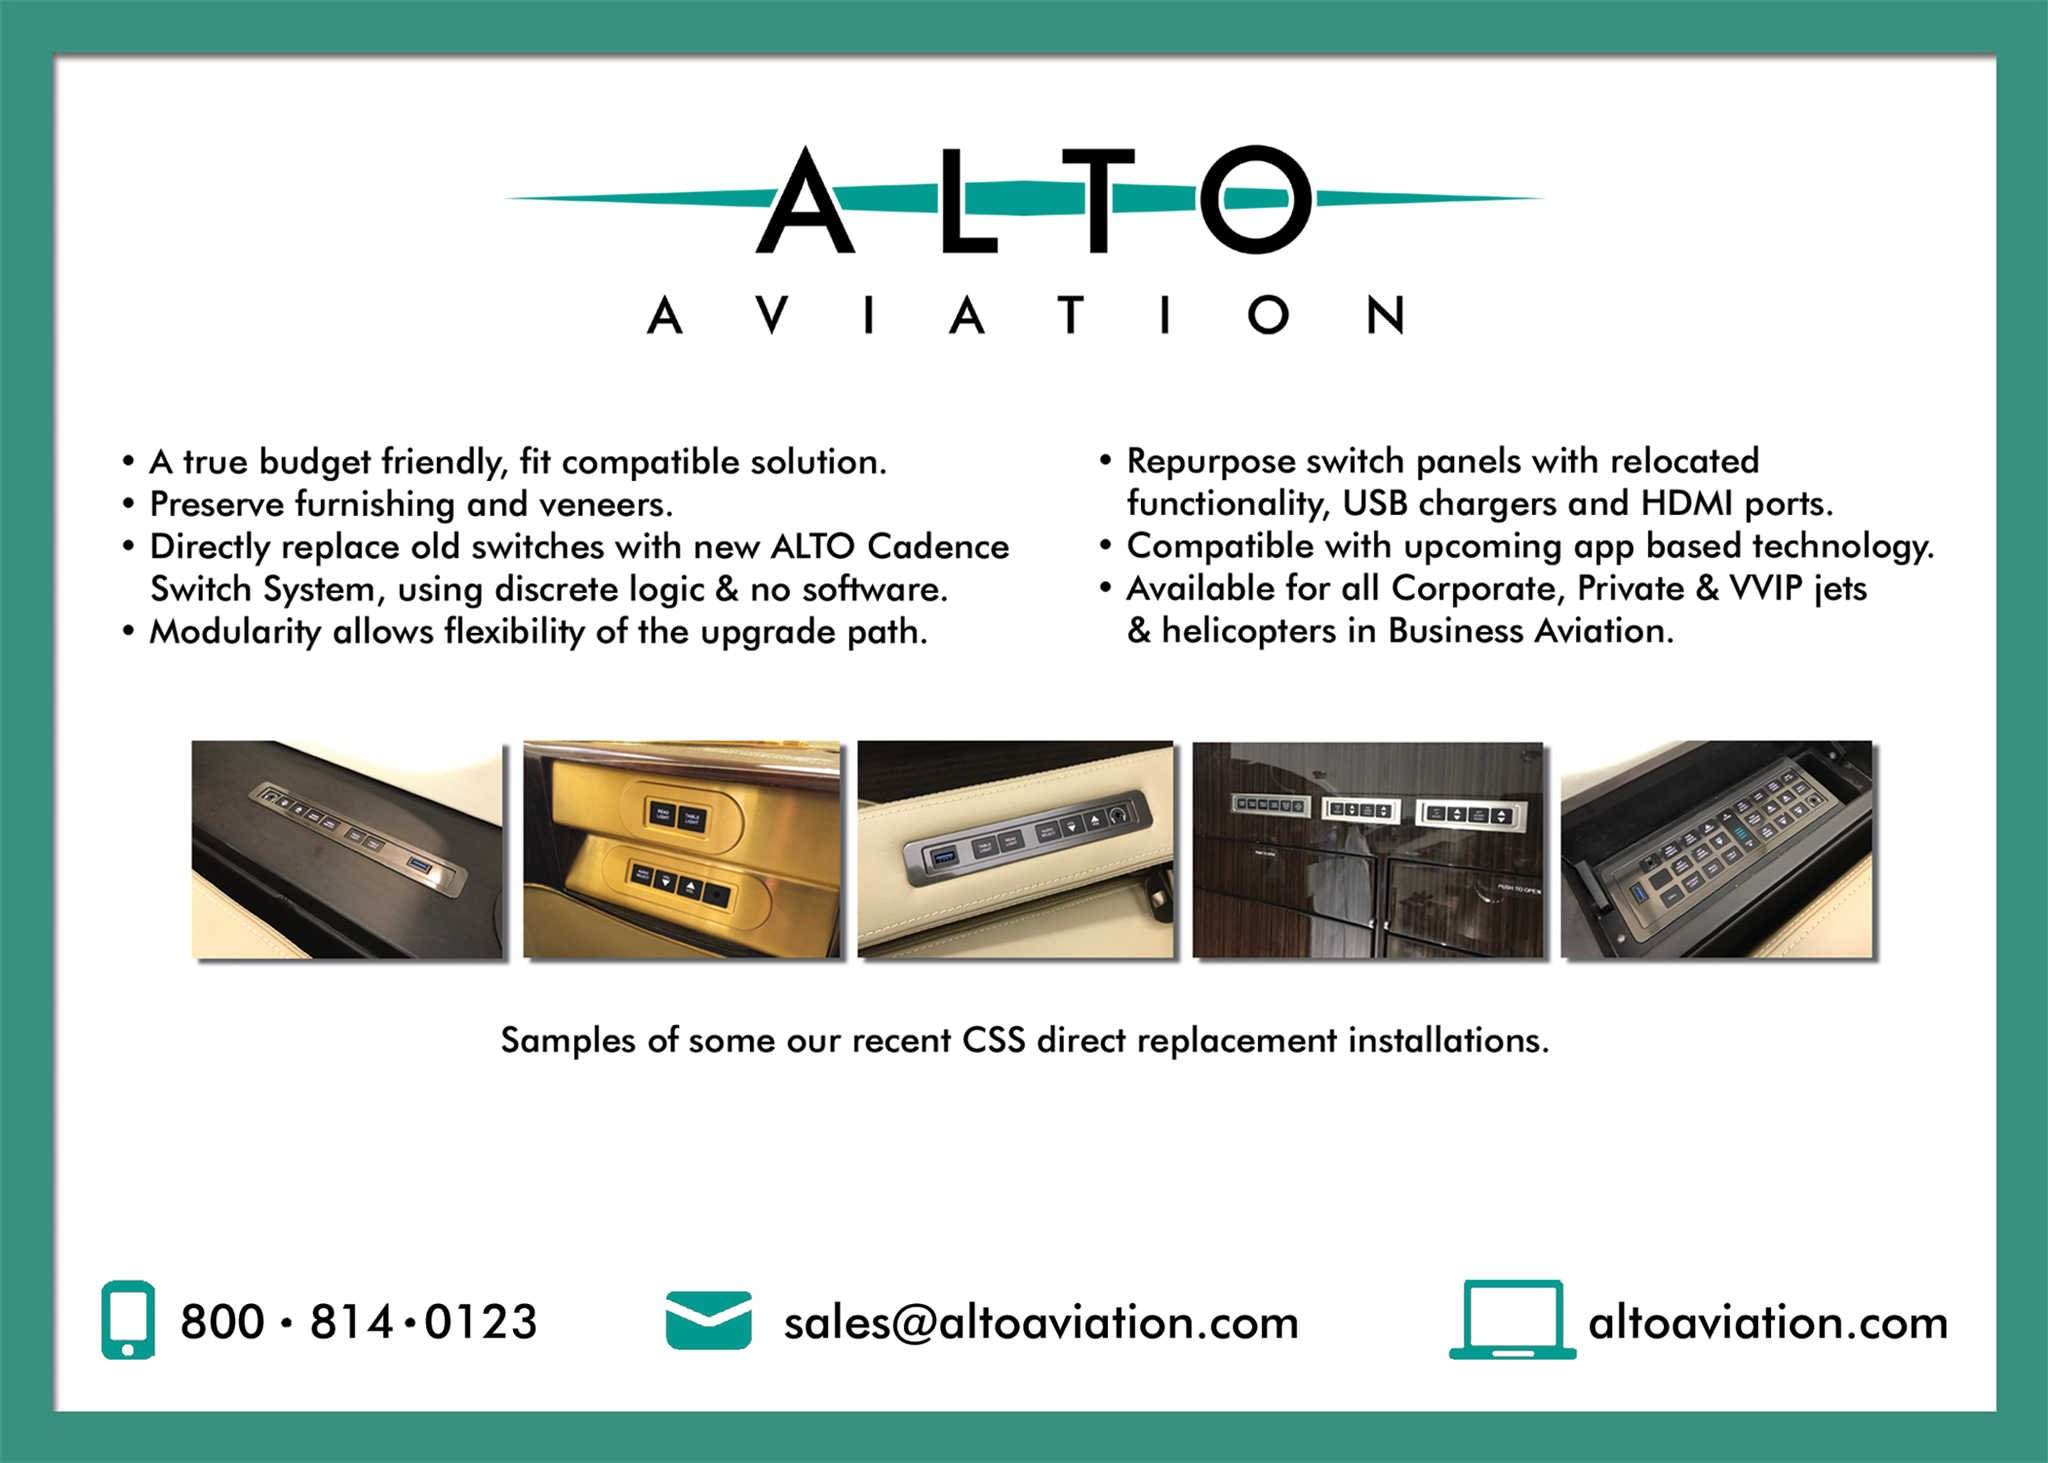 Alto Aviation CSS direct replacement installations